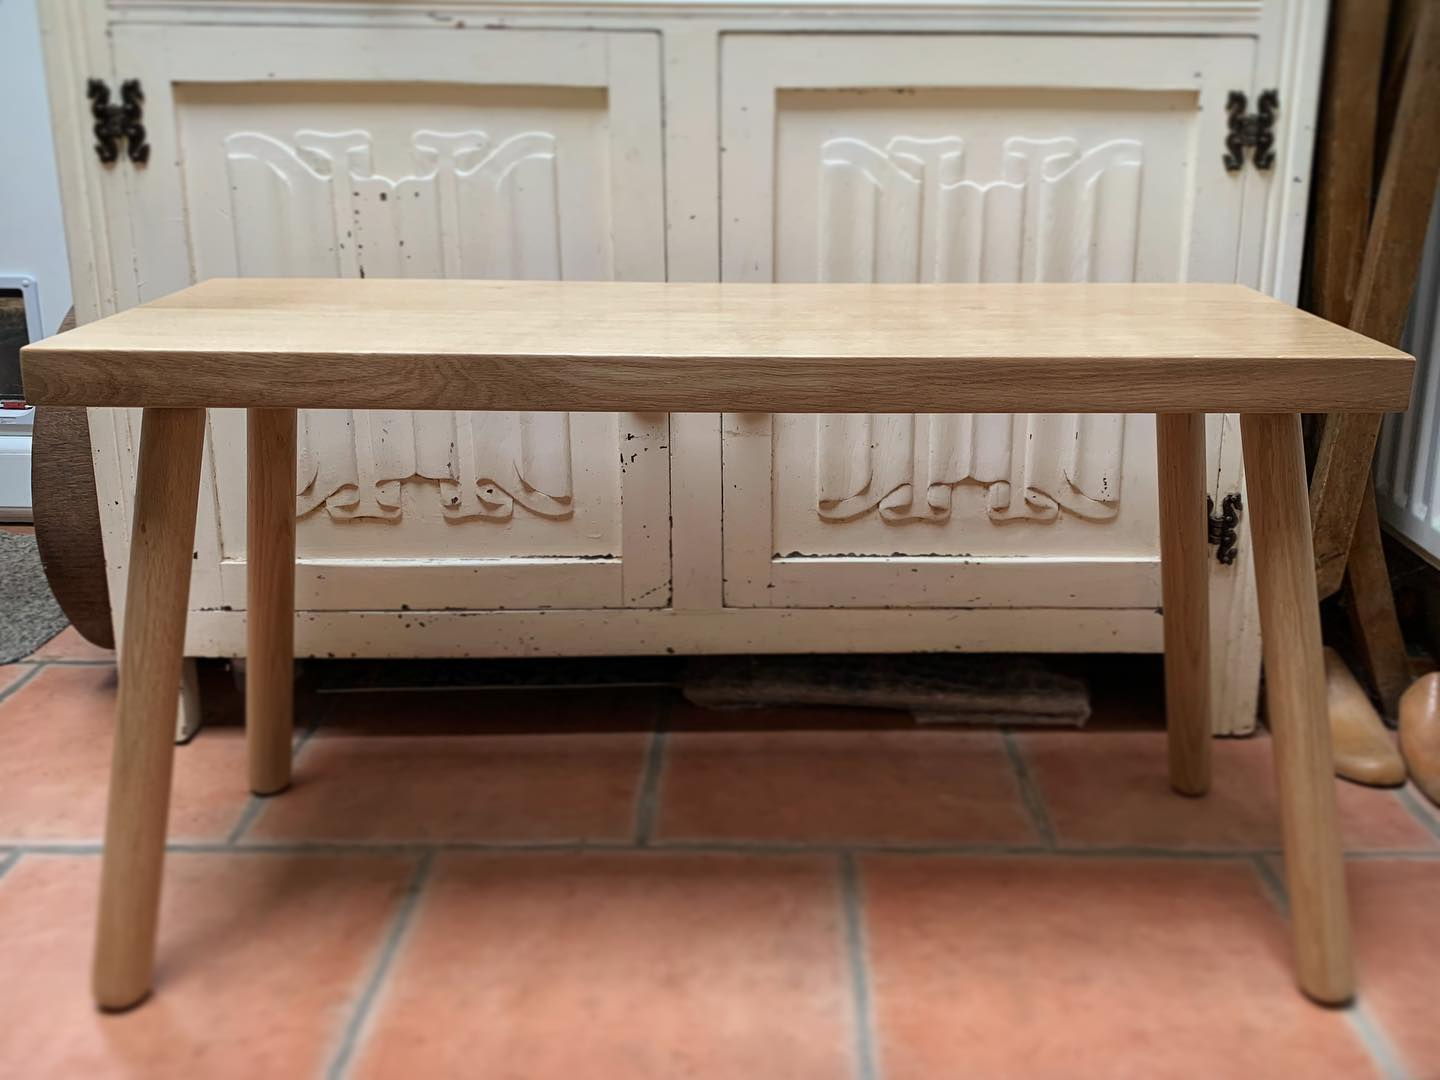 This lovely oak bench went to its forever home today, we're absolutely delighted with it! ..#oak #scandi #homedecor #beautifulwood #myhyggehome #handcrafted #homewares #natural #home #gingerandtweed